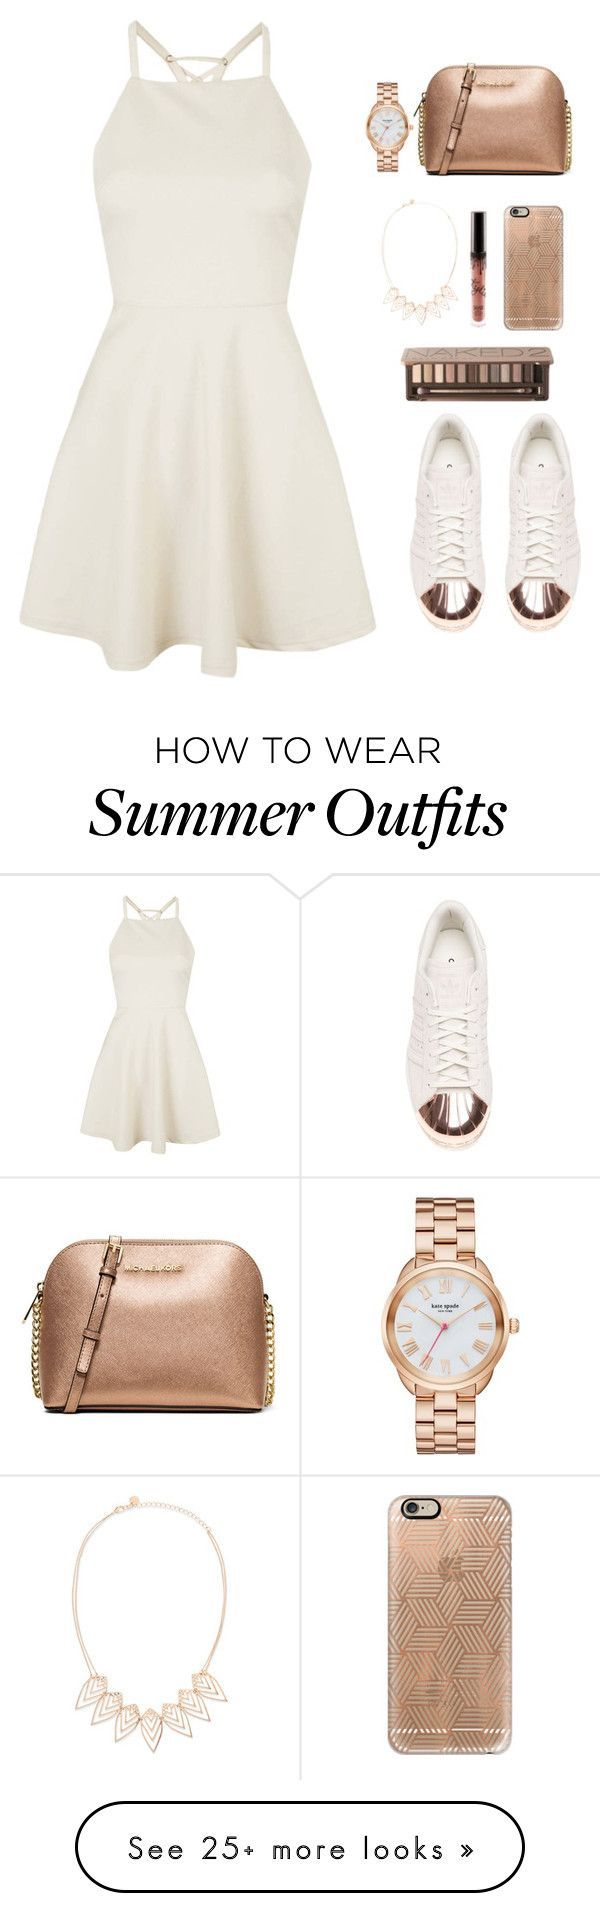 """Rose gold and white summer outfit"" by emmeleialouca on Polyvore featuring Topshop, adidas, MICHAEL Michael Kors, Casetify, Jules Smith, Urban Decay and Kate Spade"